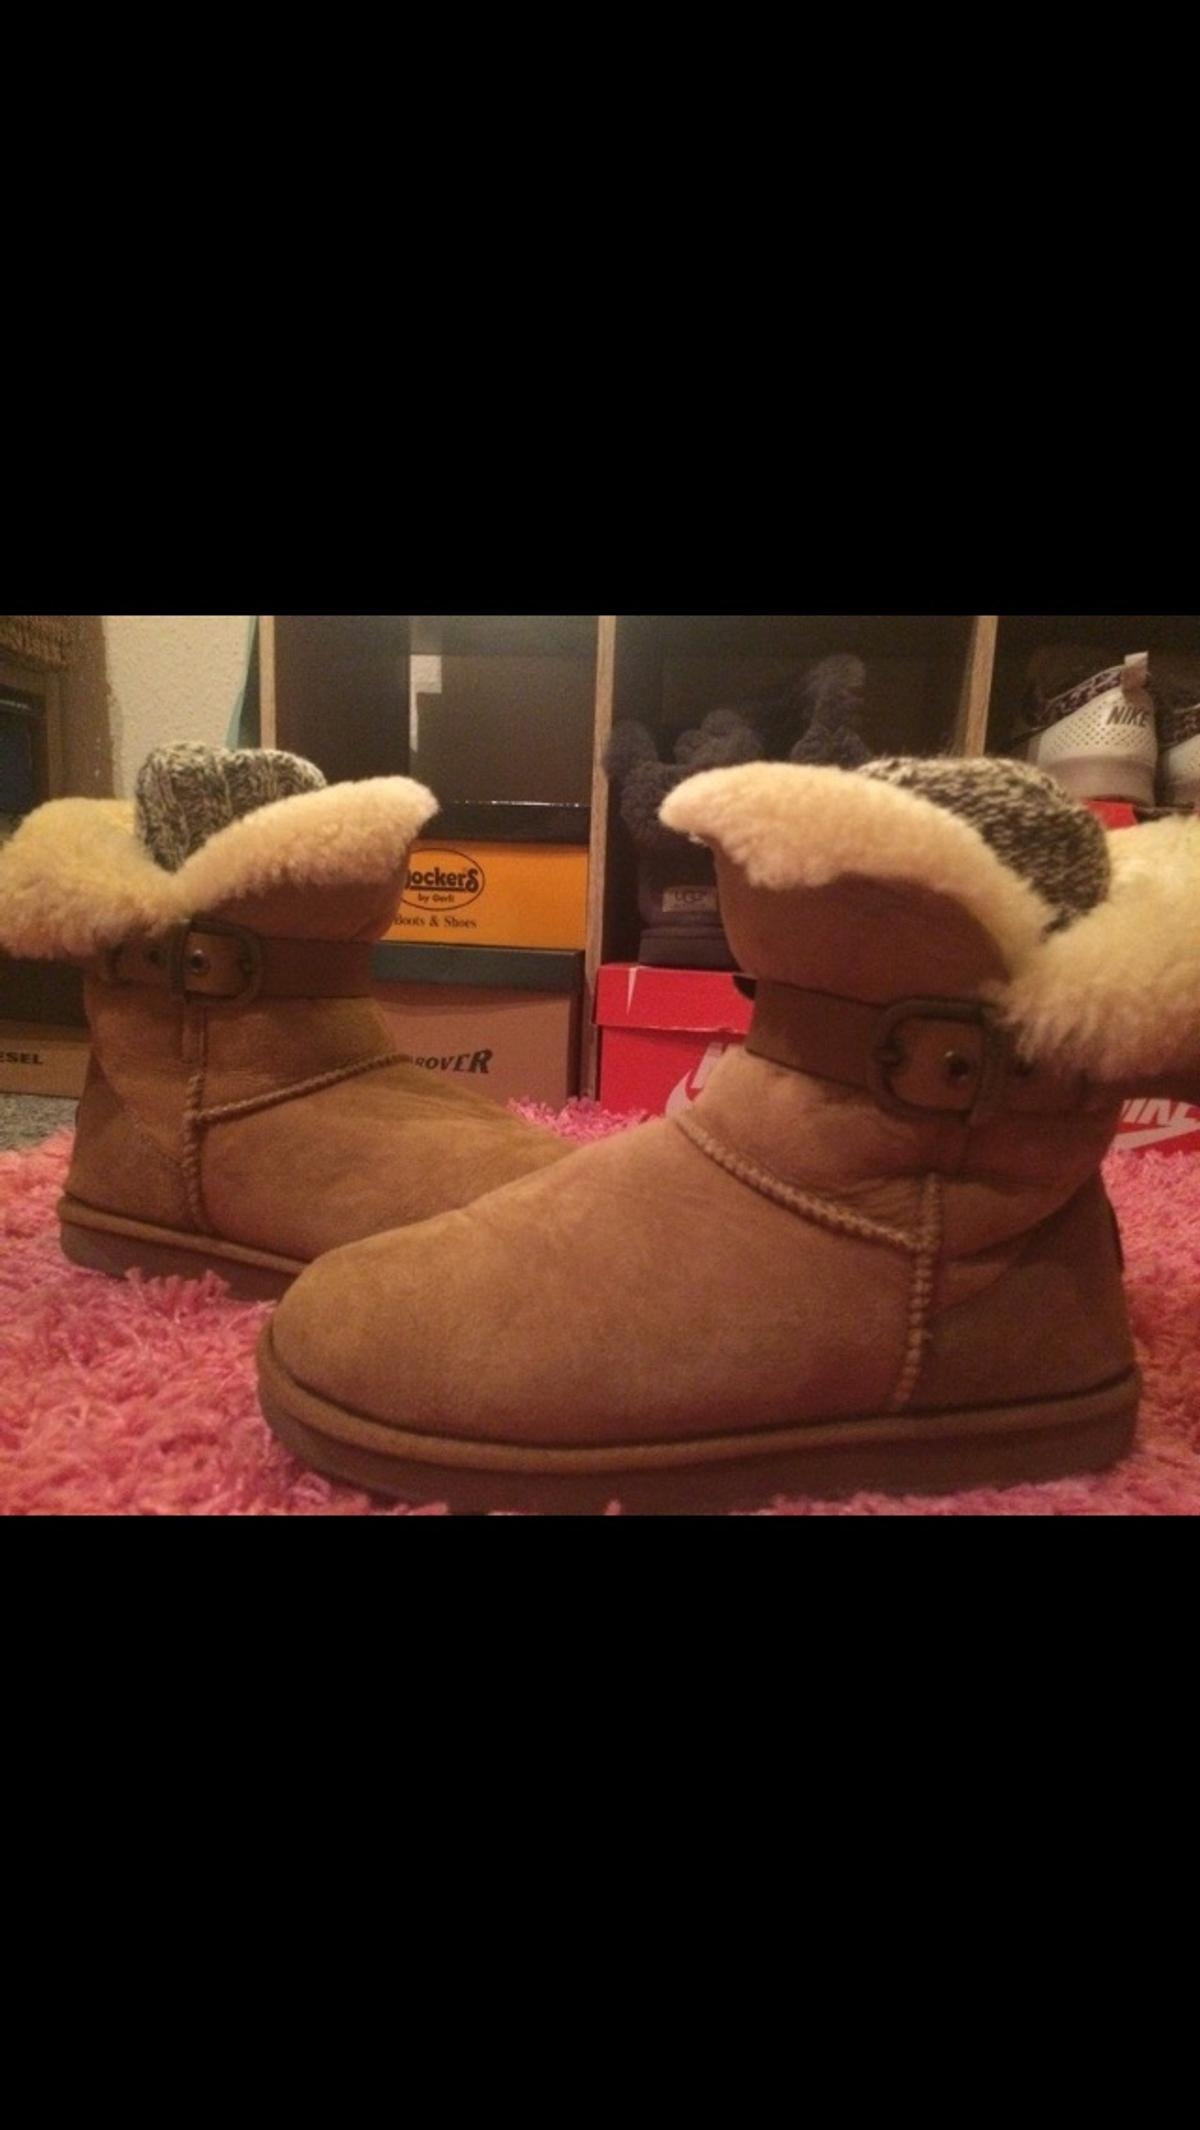 EMU Boots in beige mit Schnalle in 42349 Wuppertal for